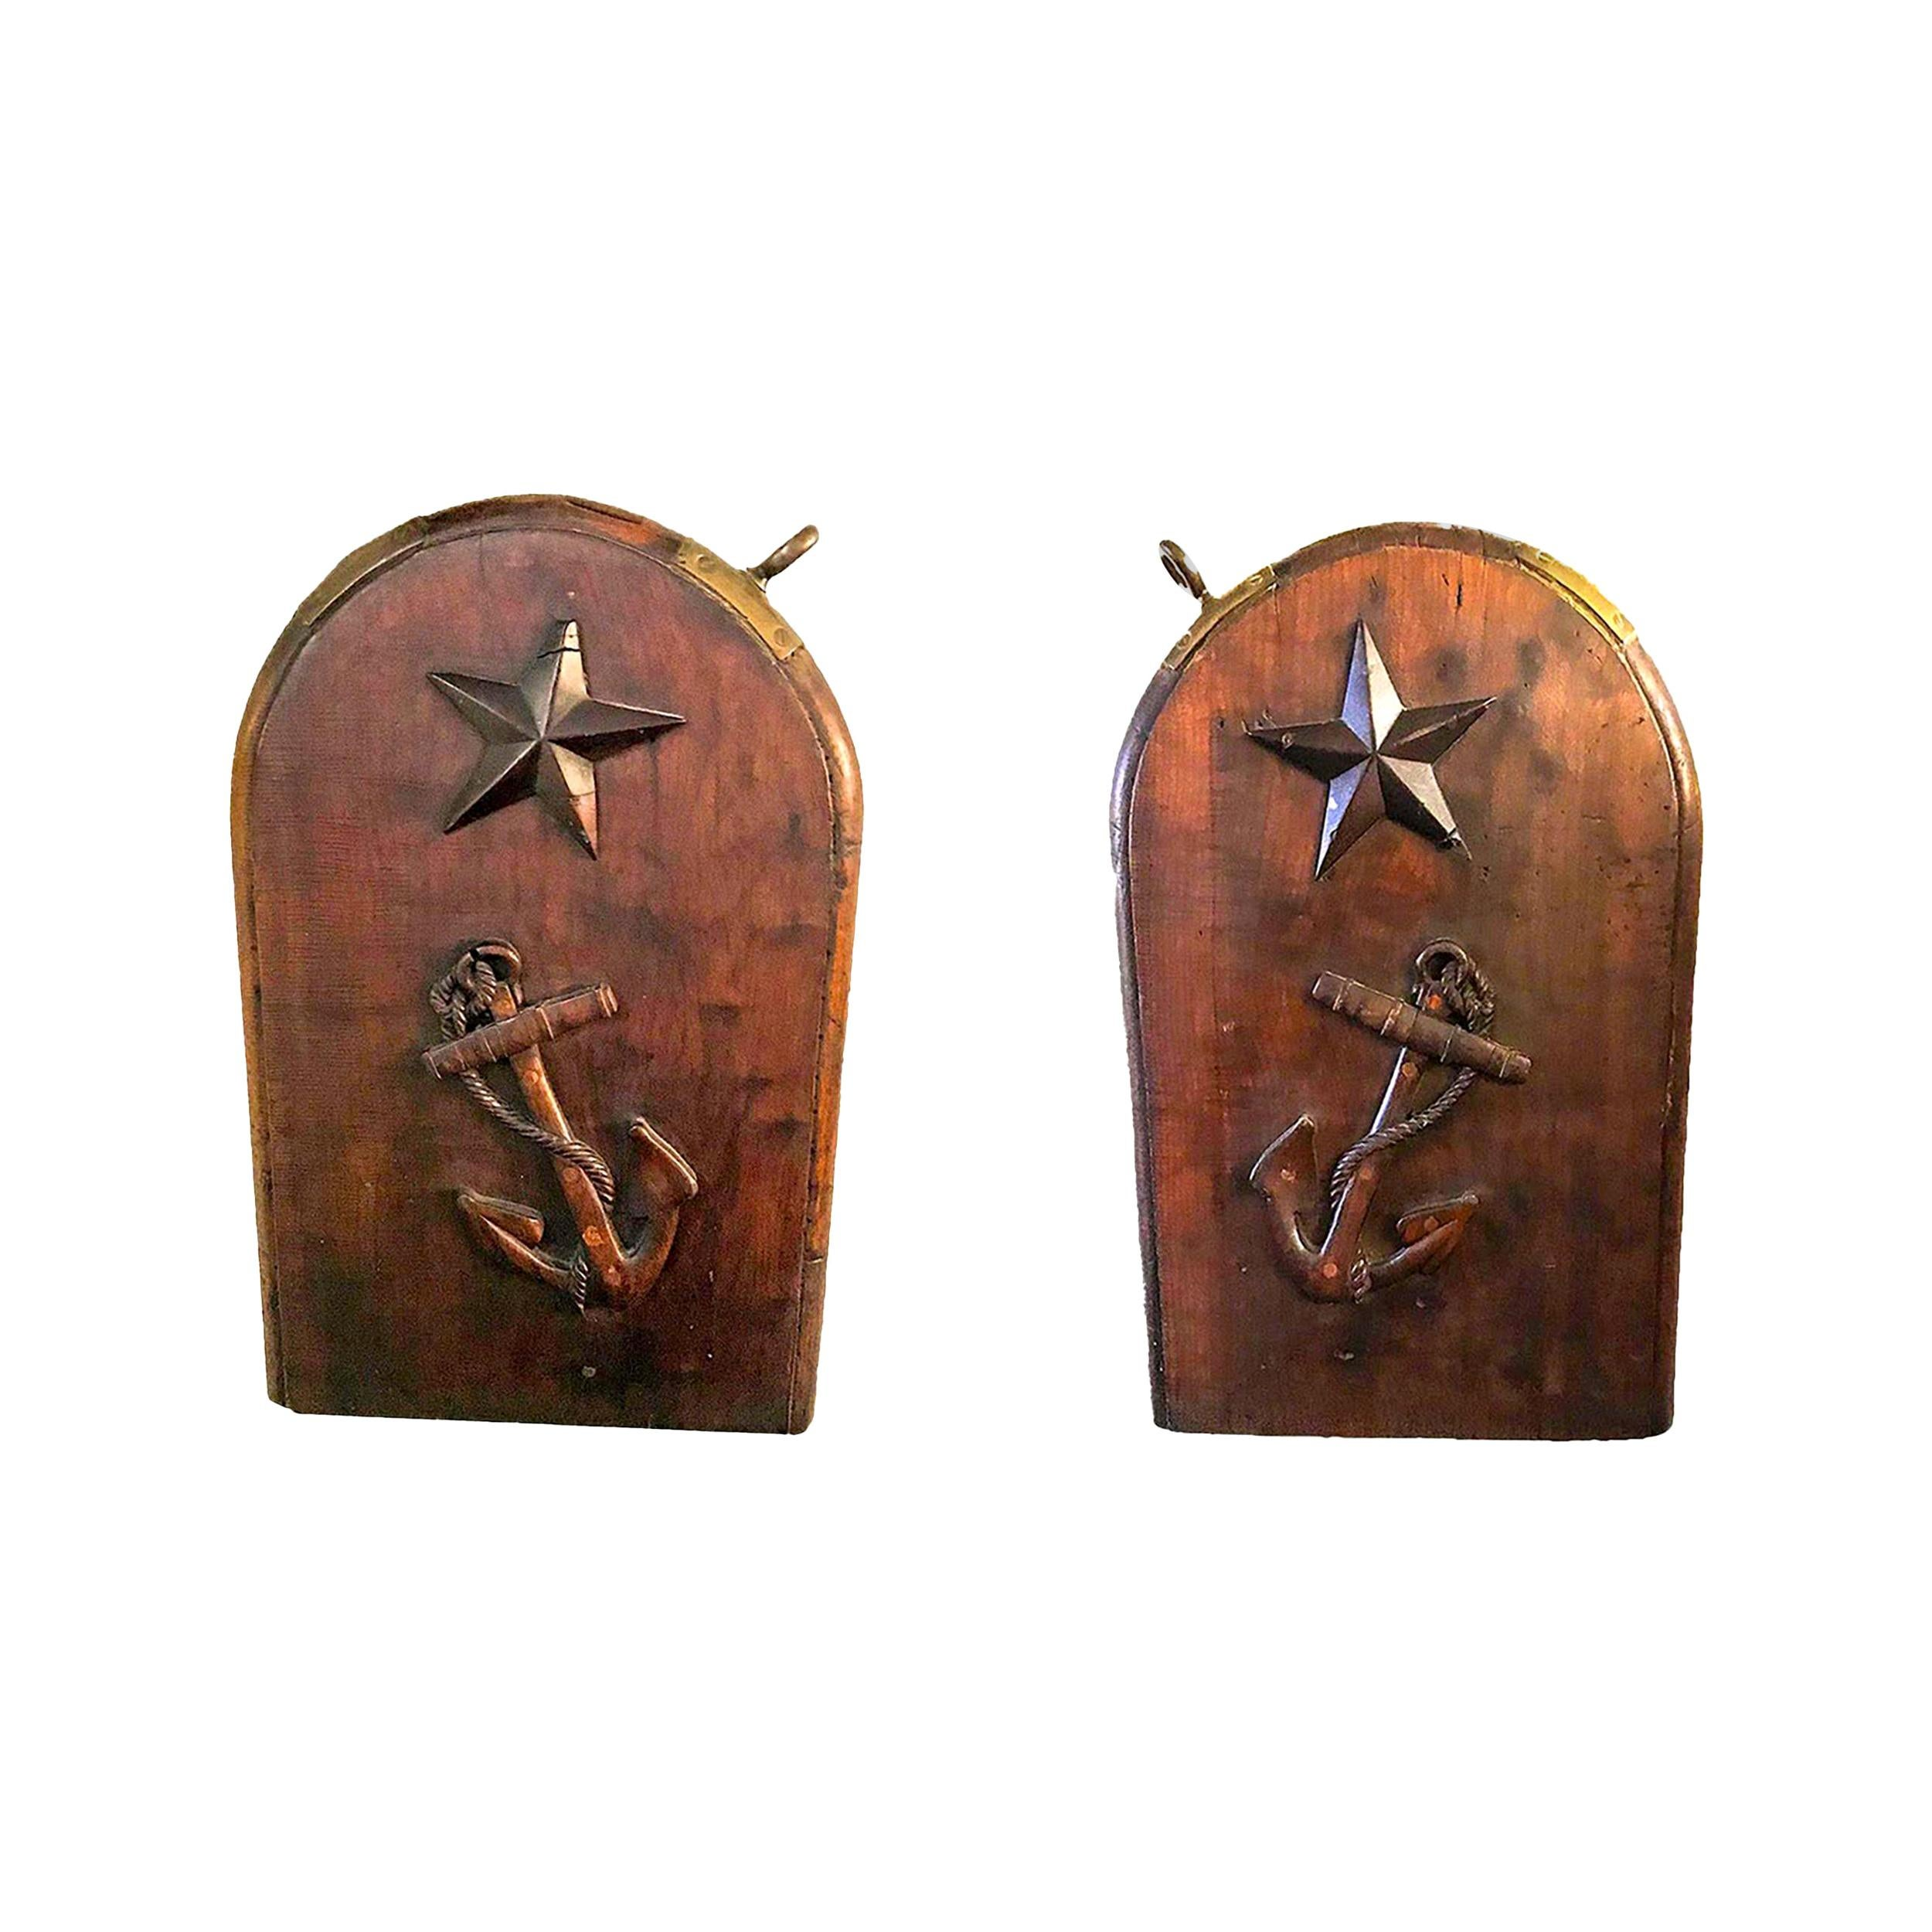 Pair of 19th Century Gangway Boards